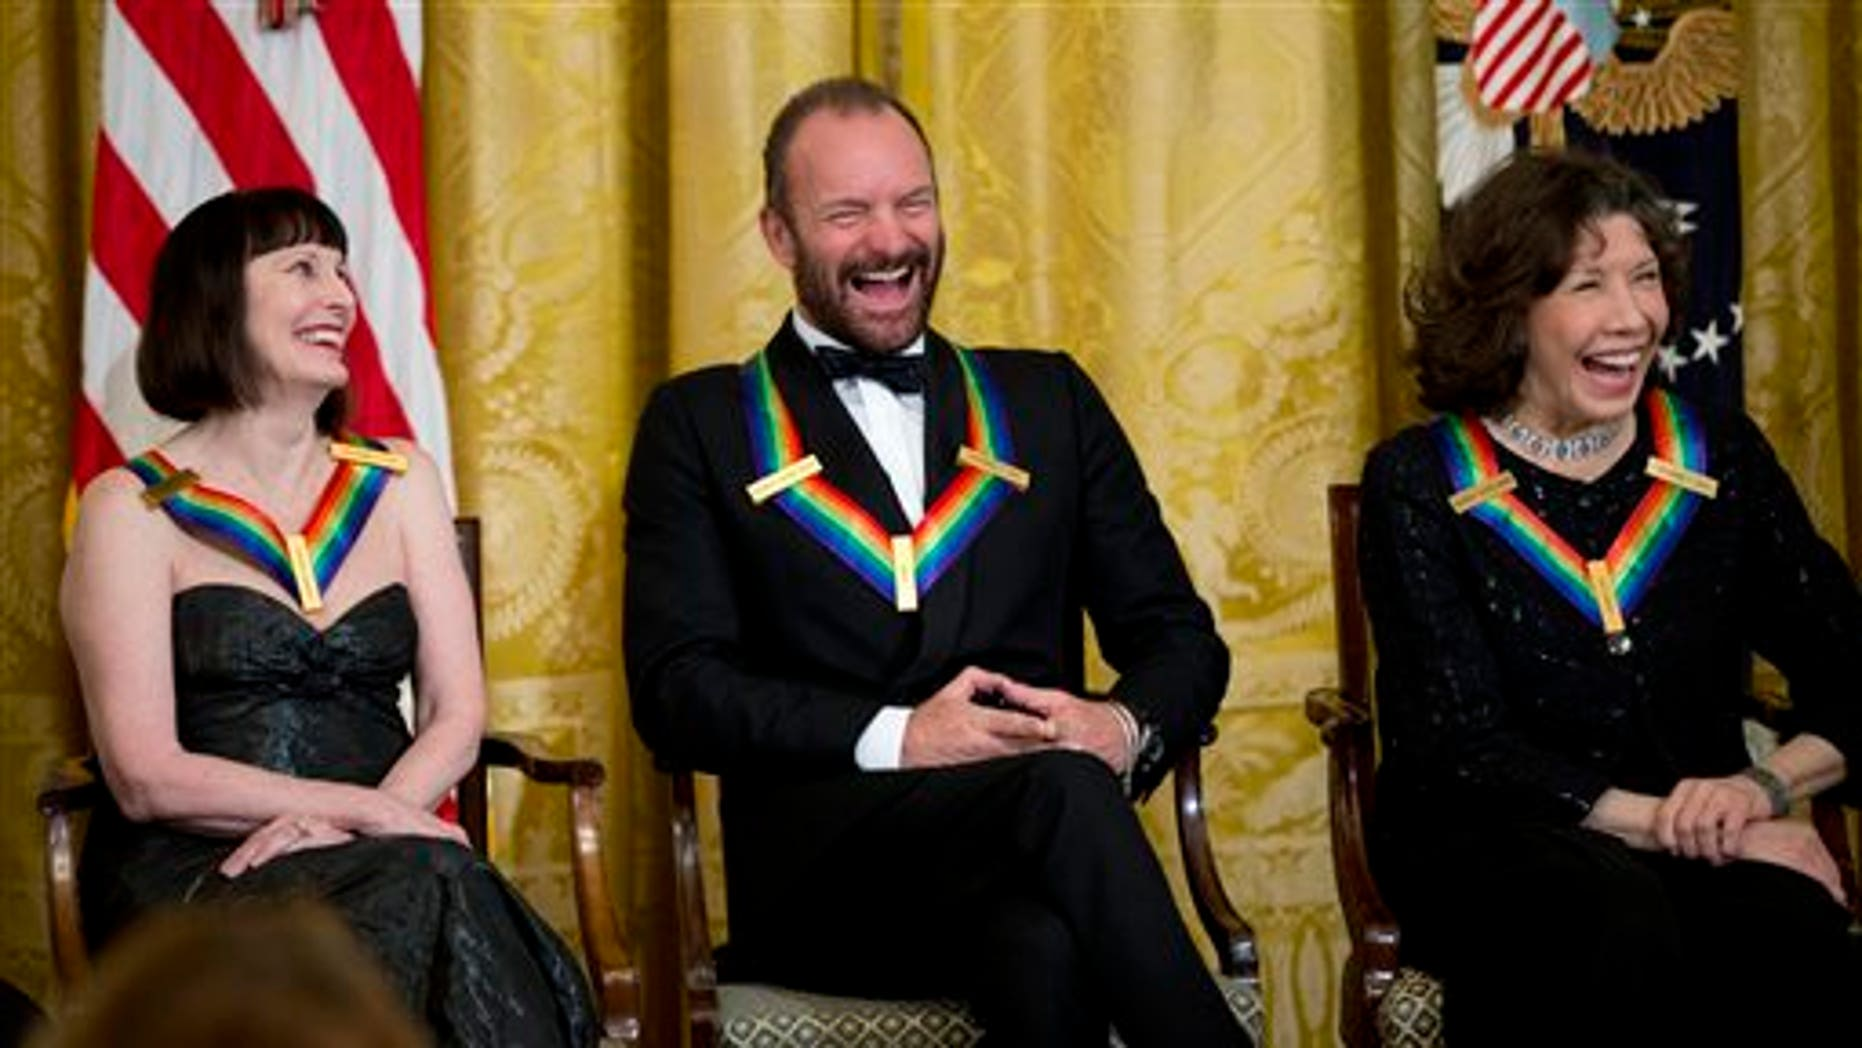 The 2014 Kennedy Center Honors Honorees ballerina Patricia McBride, from left, singer-songwriter Sting, and comedienne Lily Tomlin, laugh during a reception in their honor in the East Room of the White House in Washington, Sunday, Dec. 7, 2014, hosted by President Barack Obama and first lady Michelle Obama.   (AP Photo/Manuel Balce Ceneta)